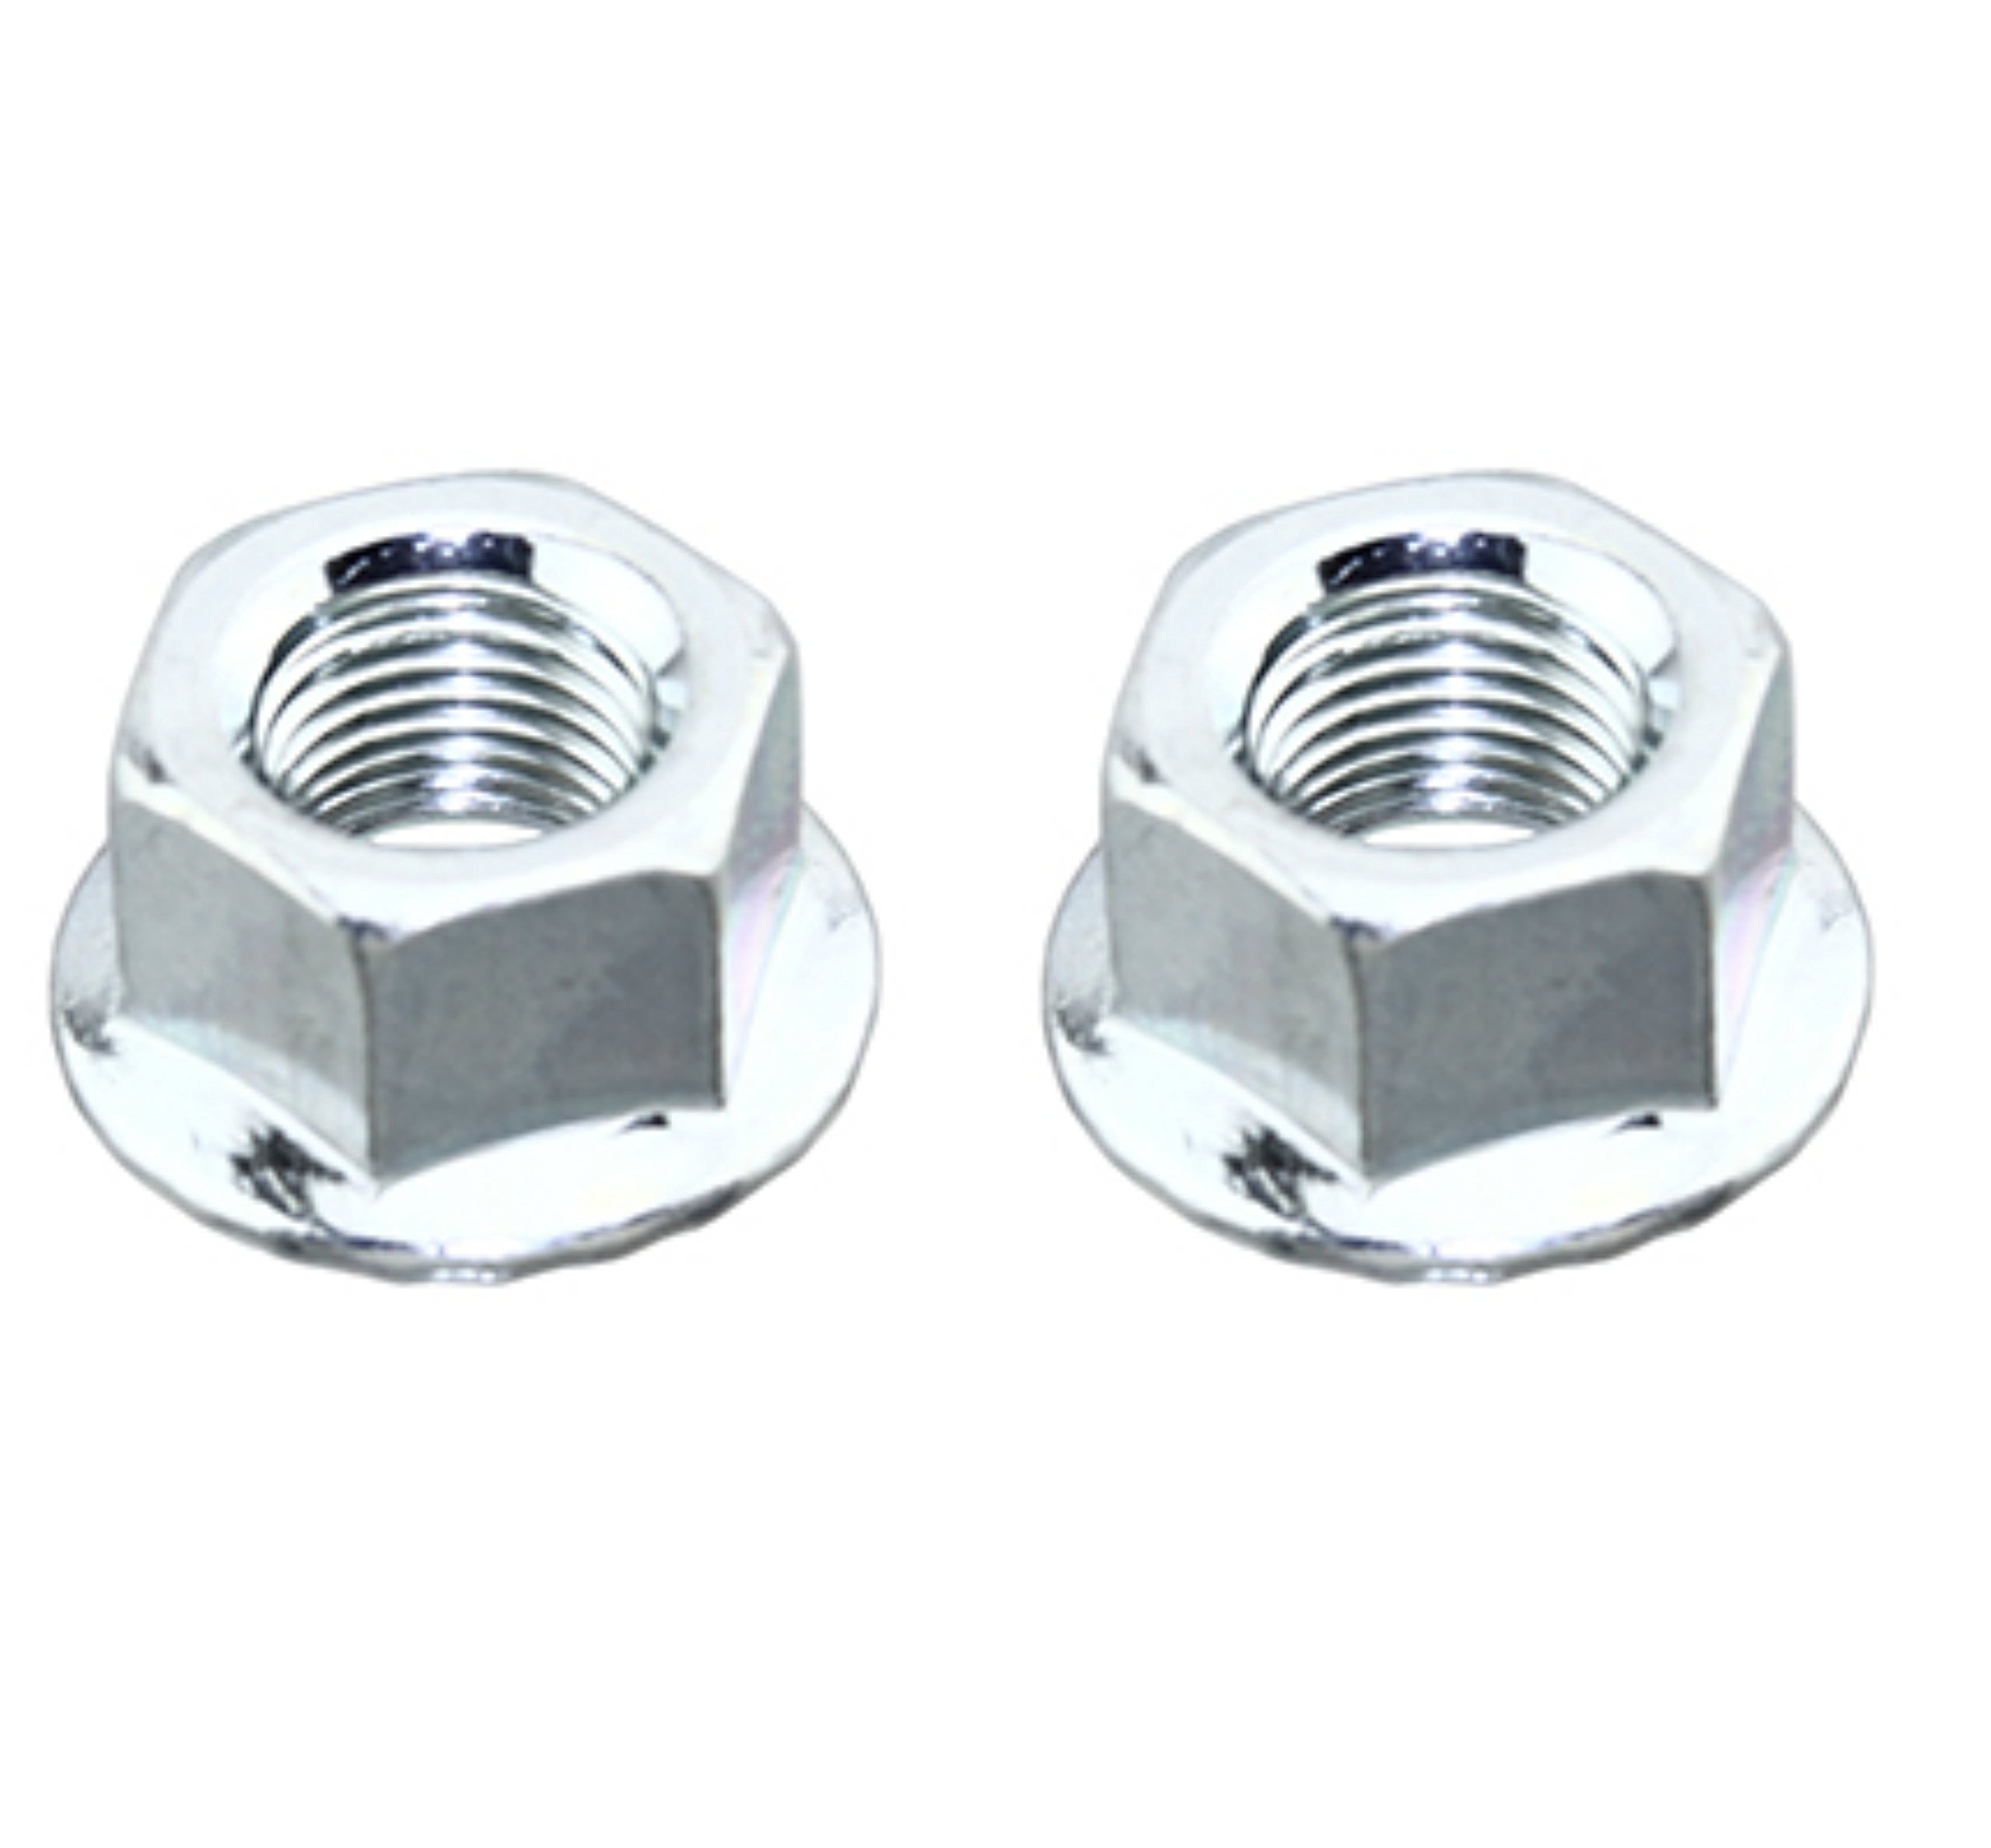 Lowrider 2 - Nuts 3/8 x 26t Front/Rear Chrome. Set of axle nut. Pair of axle nut. Bicycle nut, bike nut, beach cruiser, chopper, mountain, limo